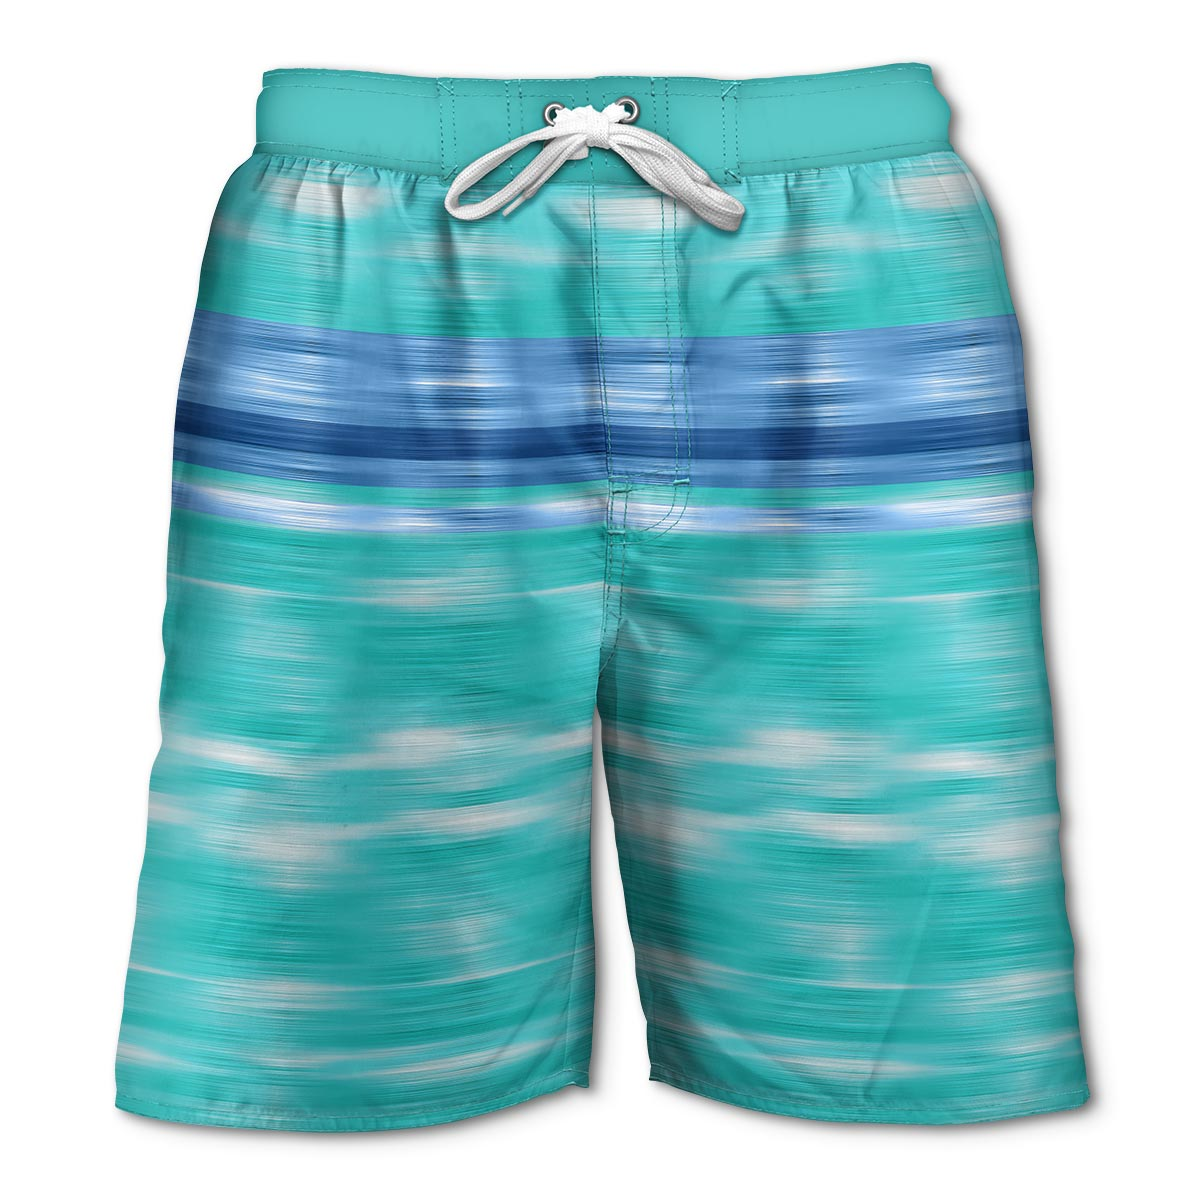 Newport Blue - Swim Shorts | Rip Tide - Seagreen